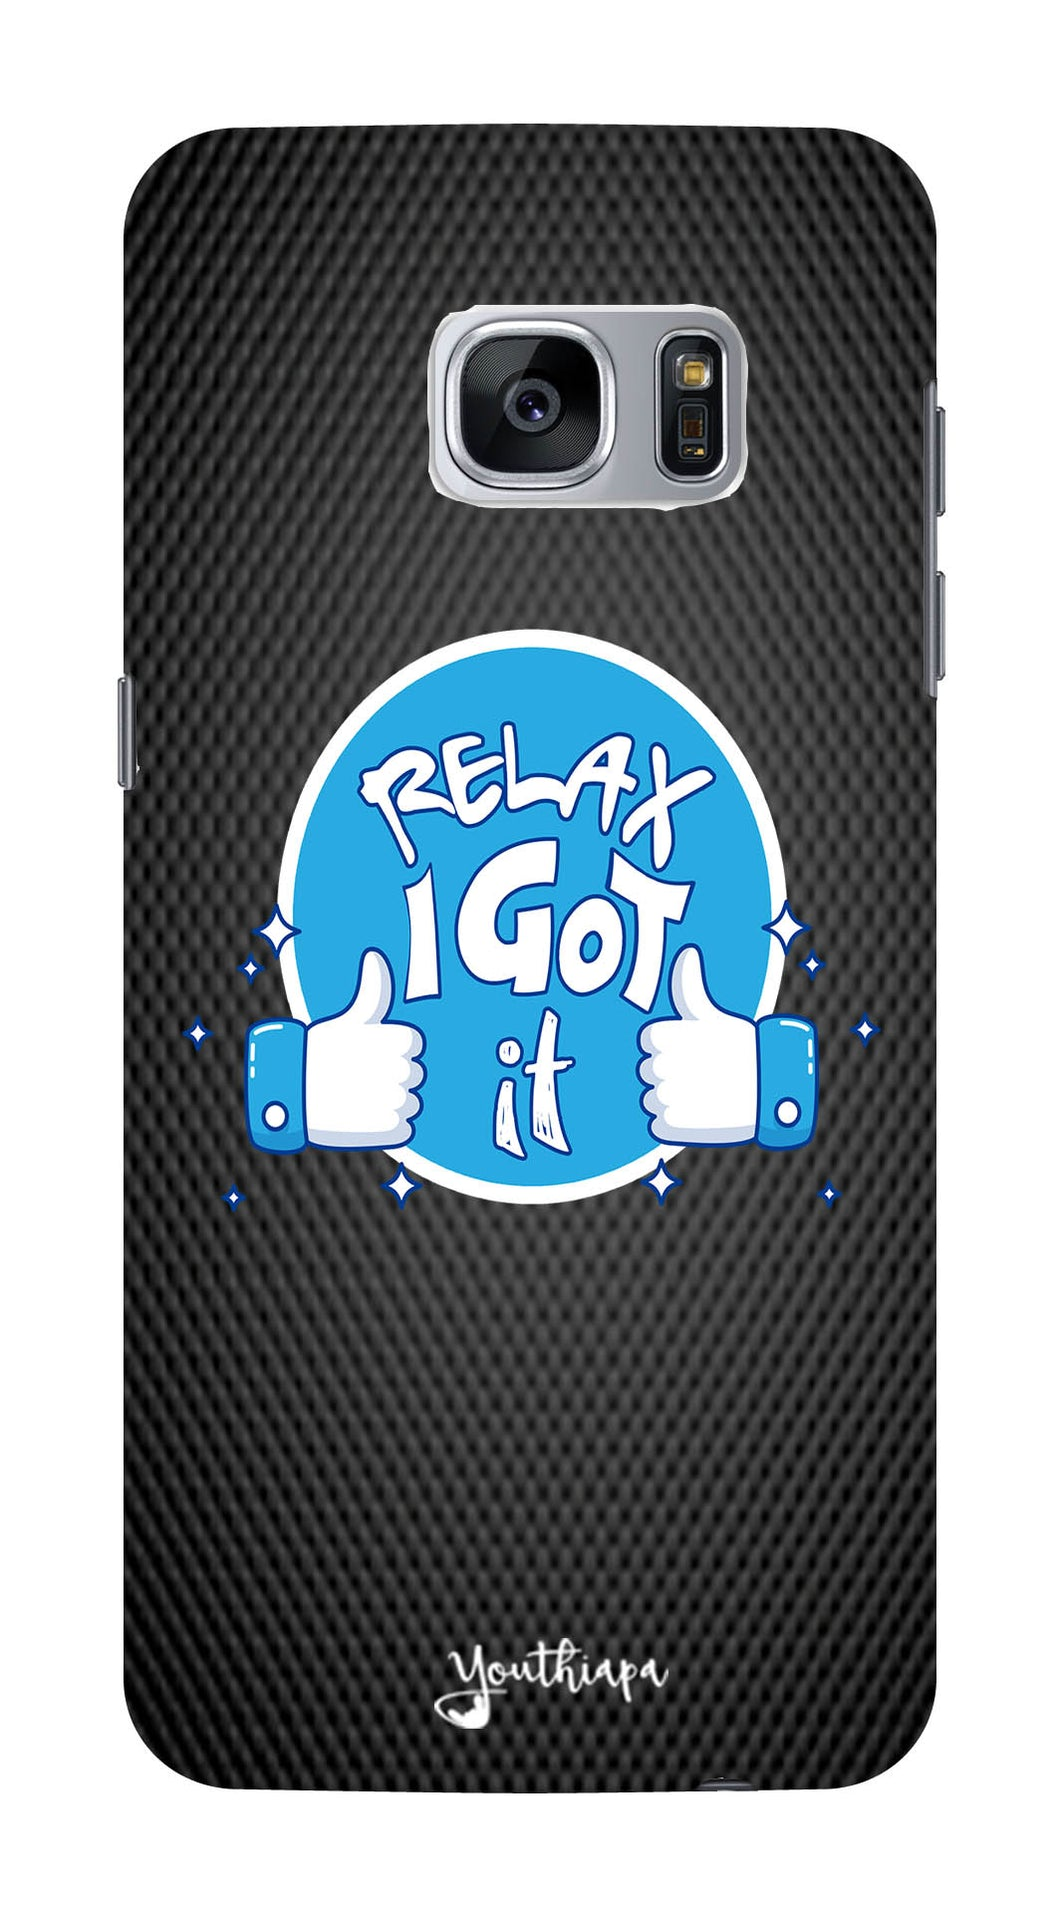 Relax Editon for Samsung Galaxy S7 Edge